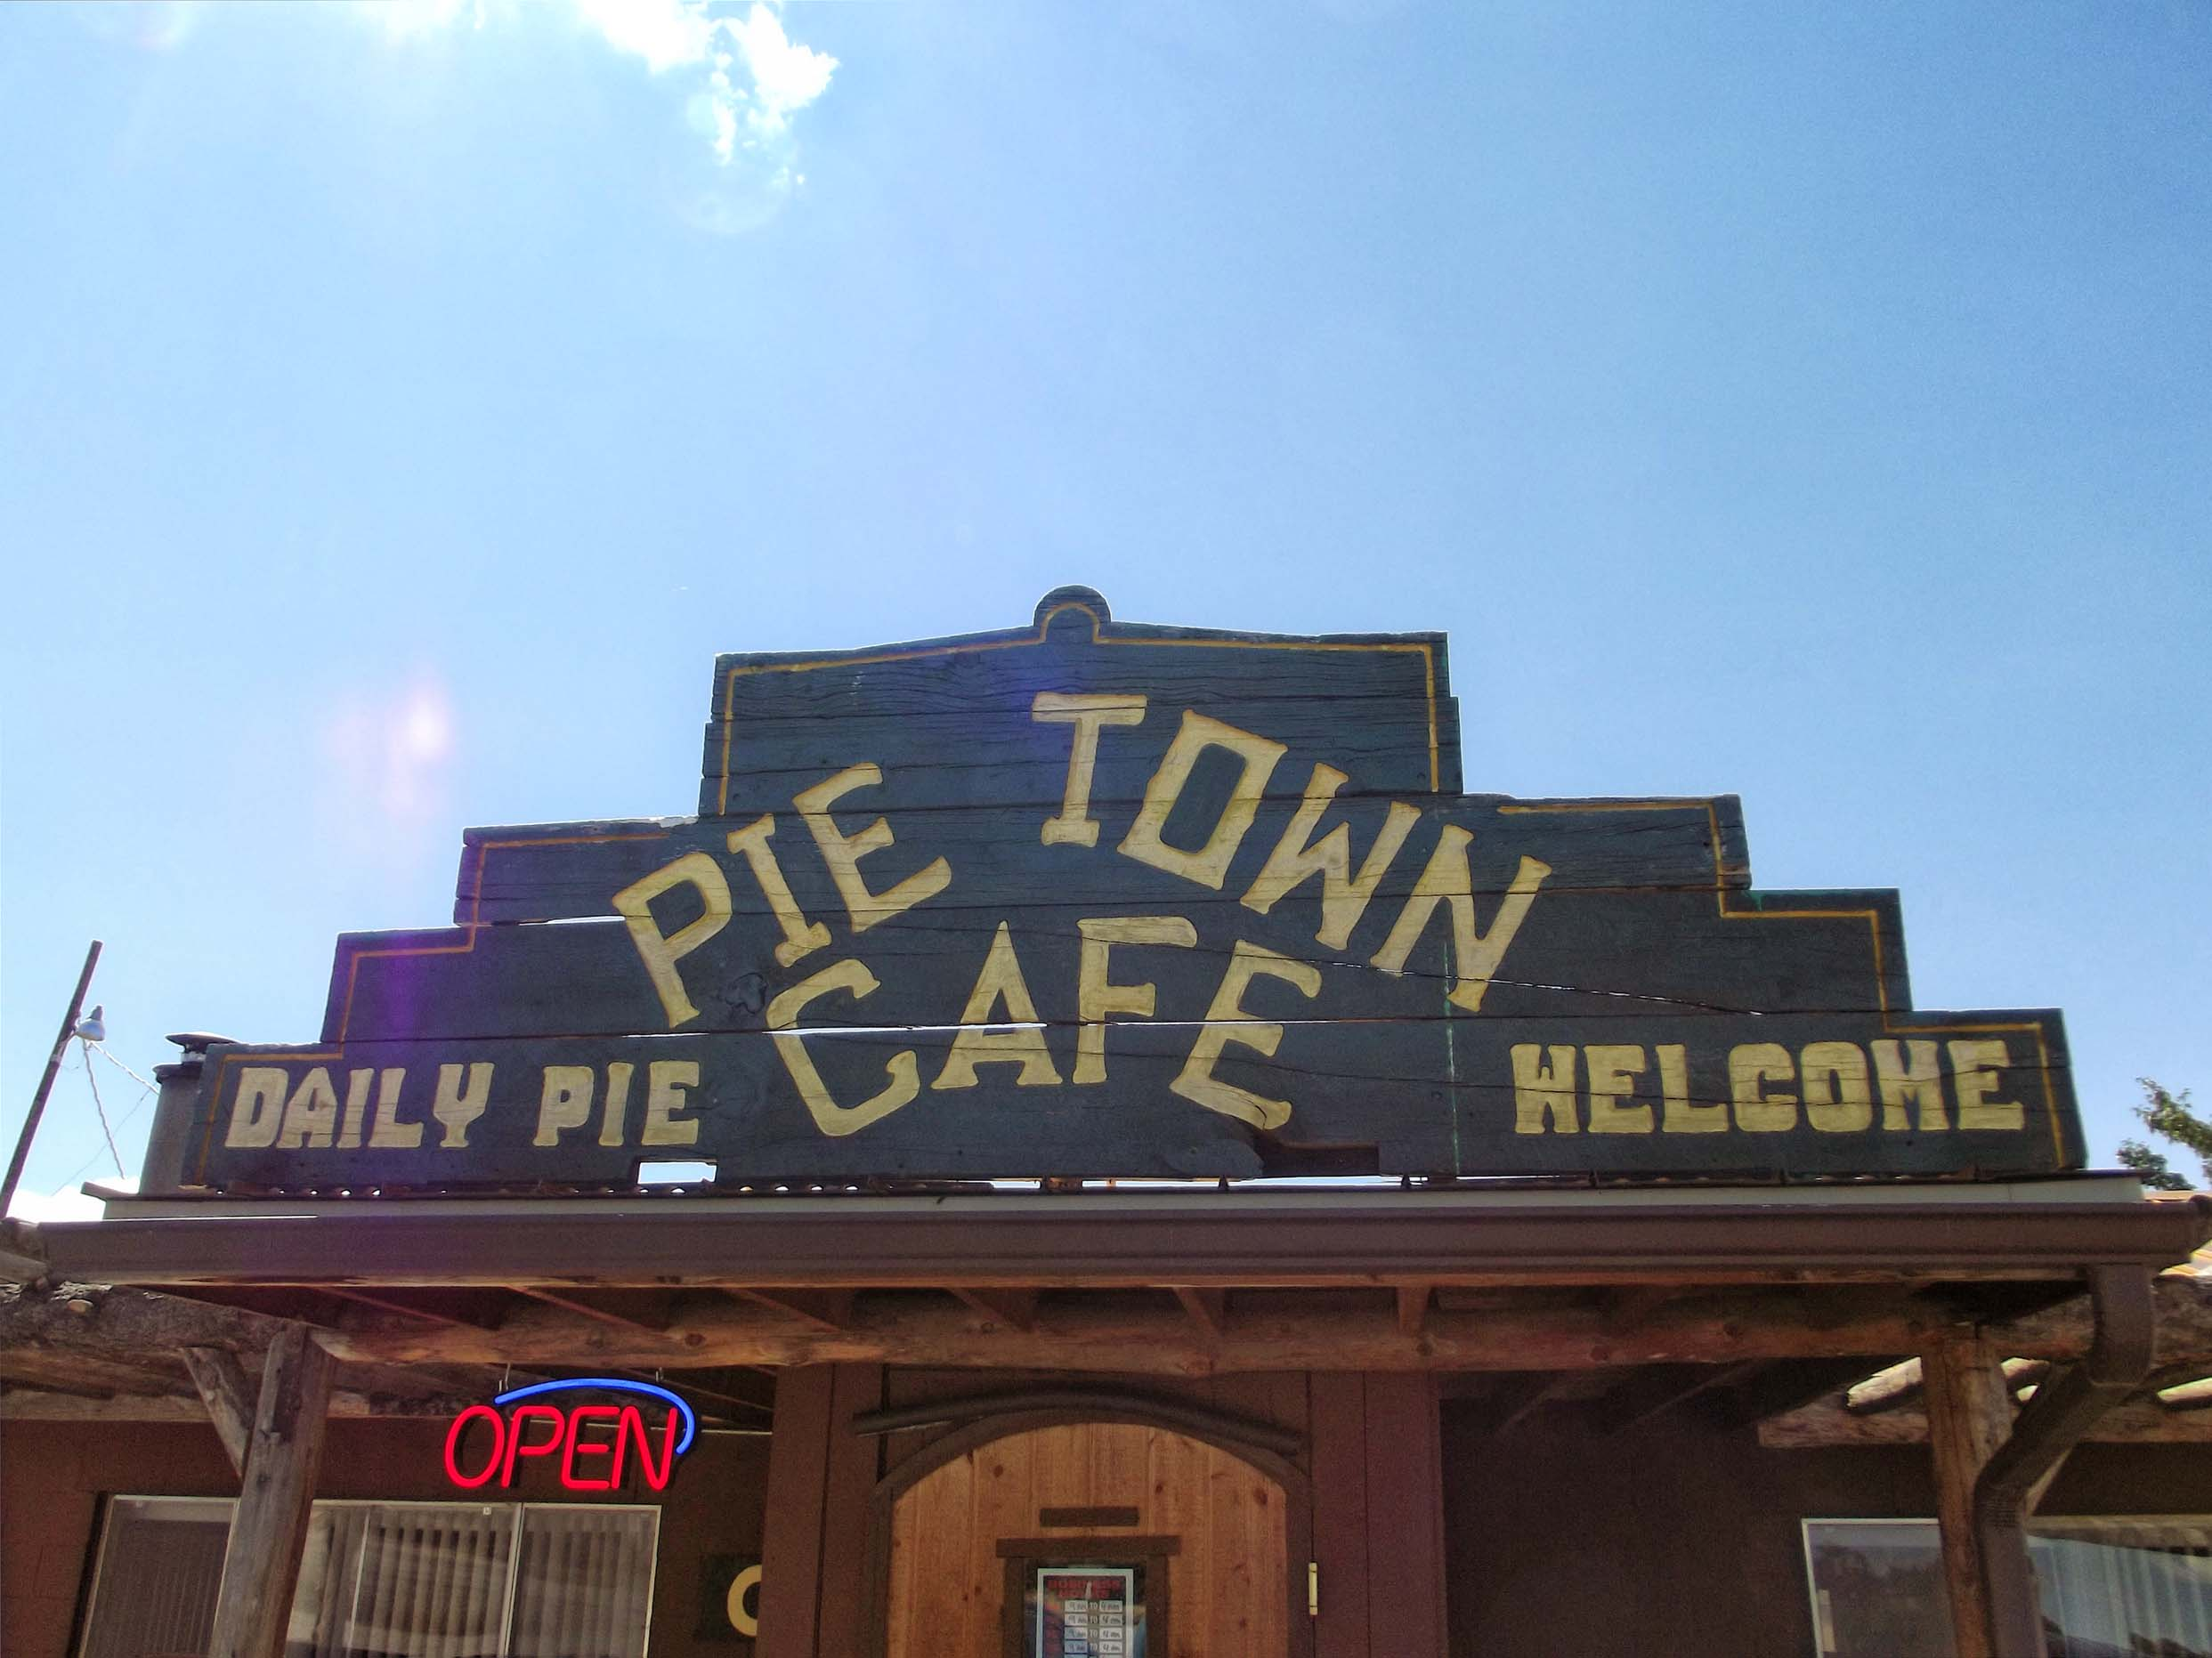 Wooden cafe building with large sign